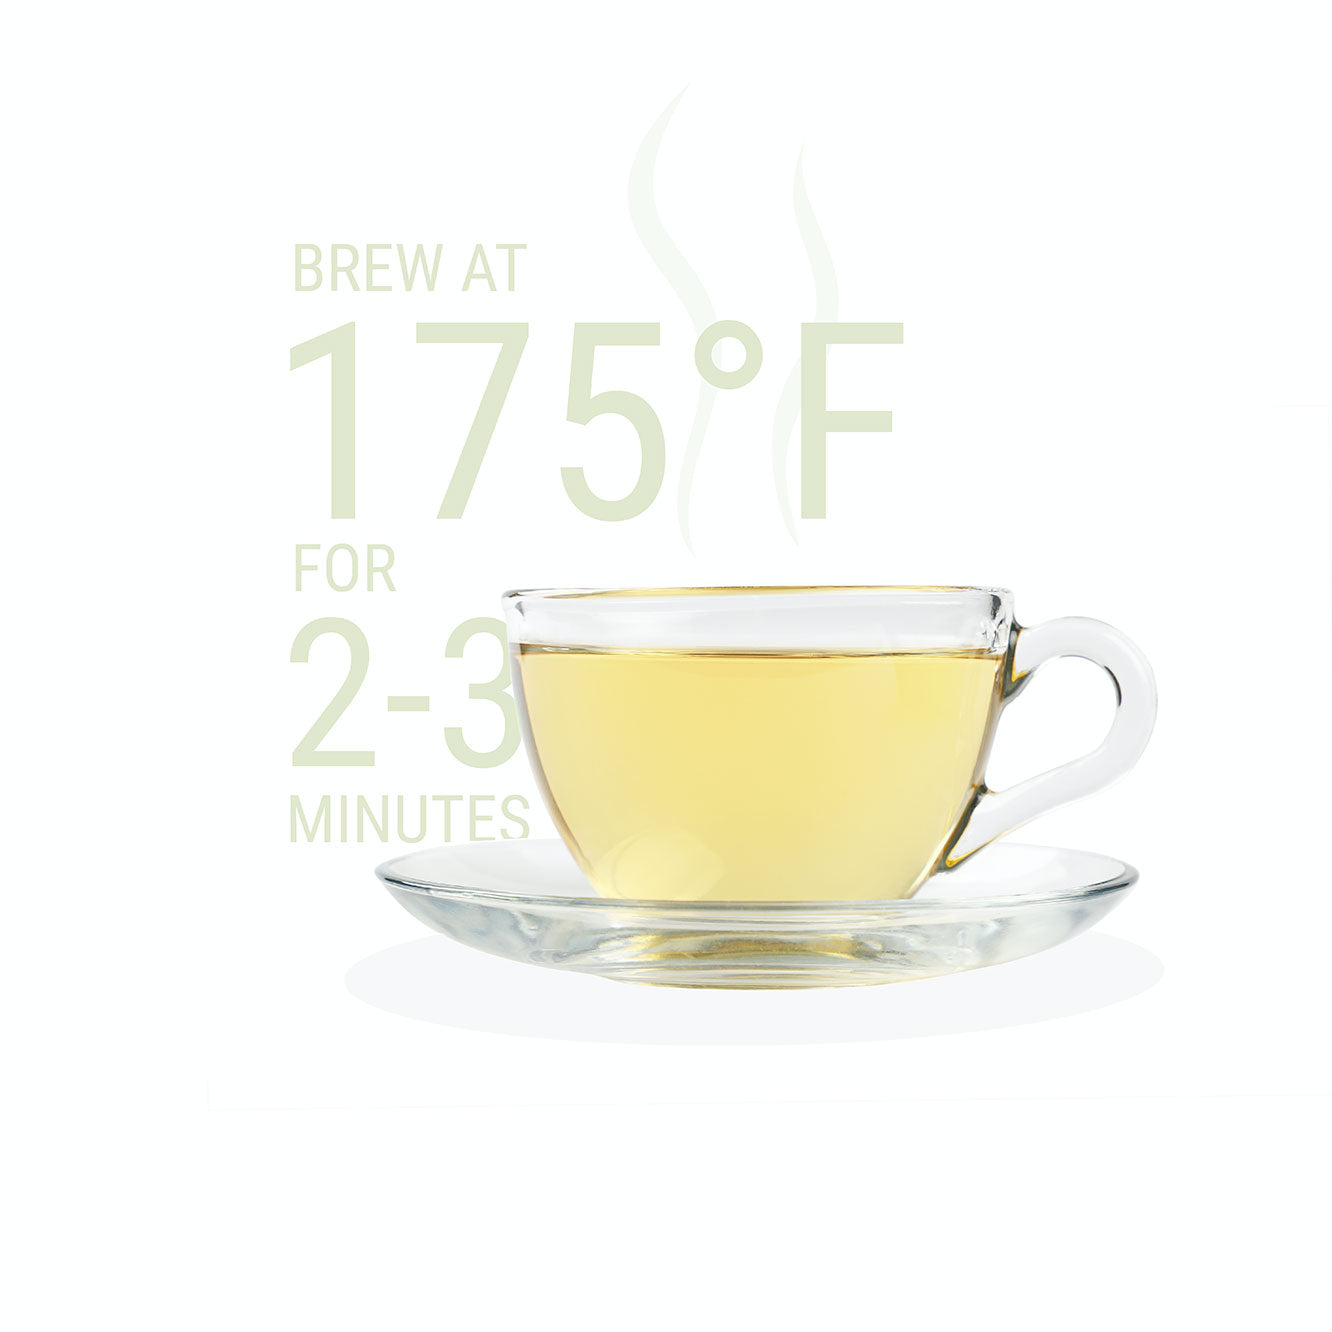 a clear cup with brewed white tea and brewing instructions of 175 degrees for two to three minutes